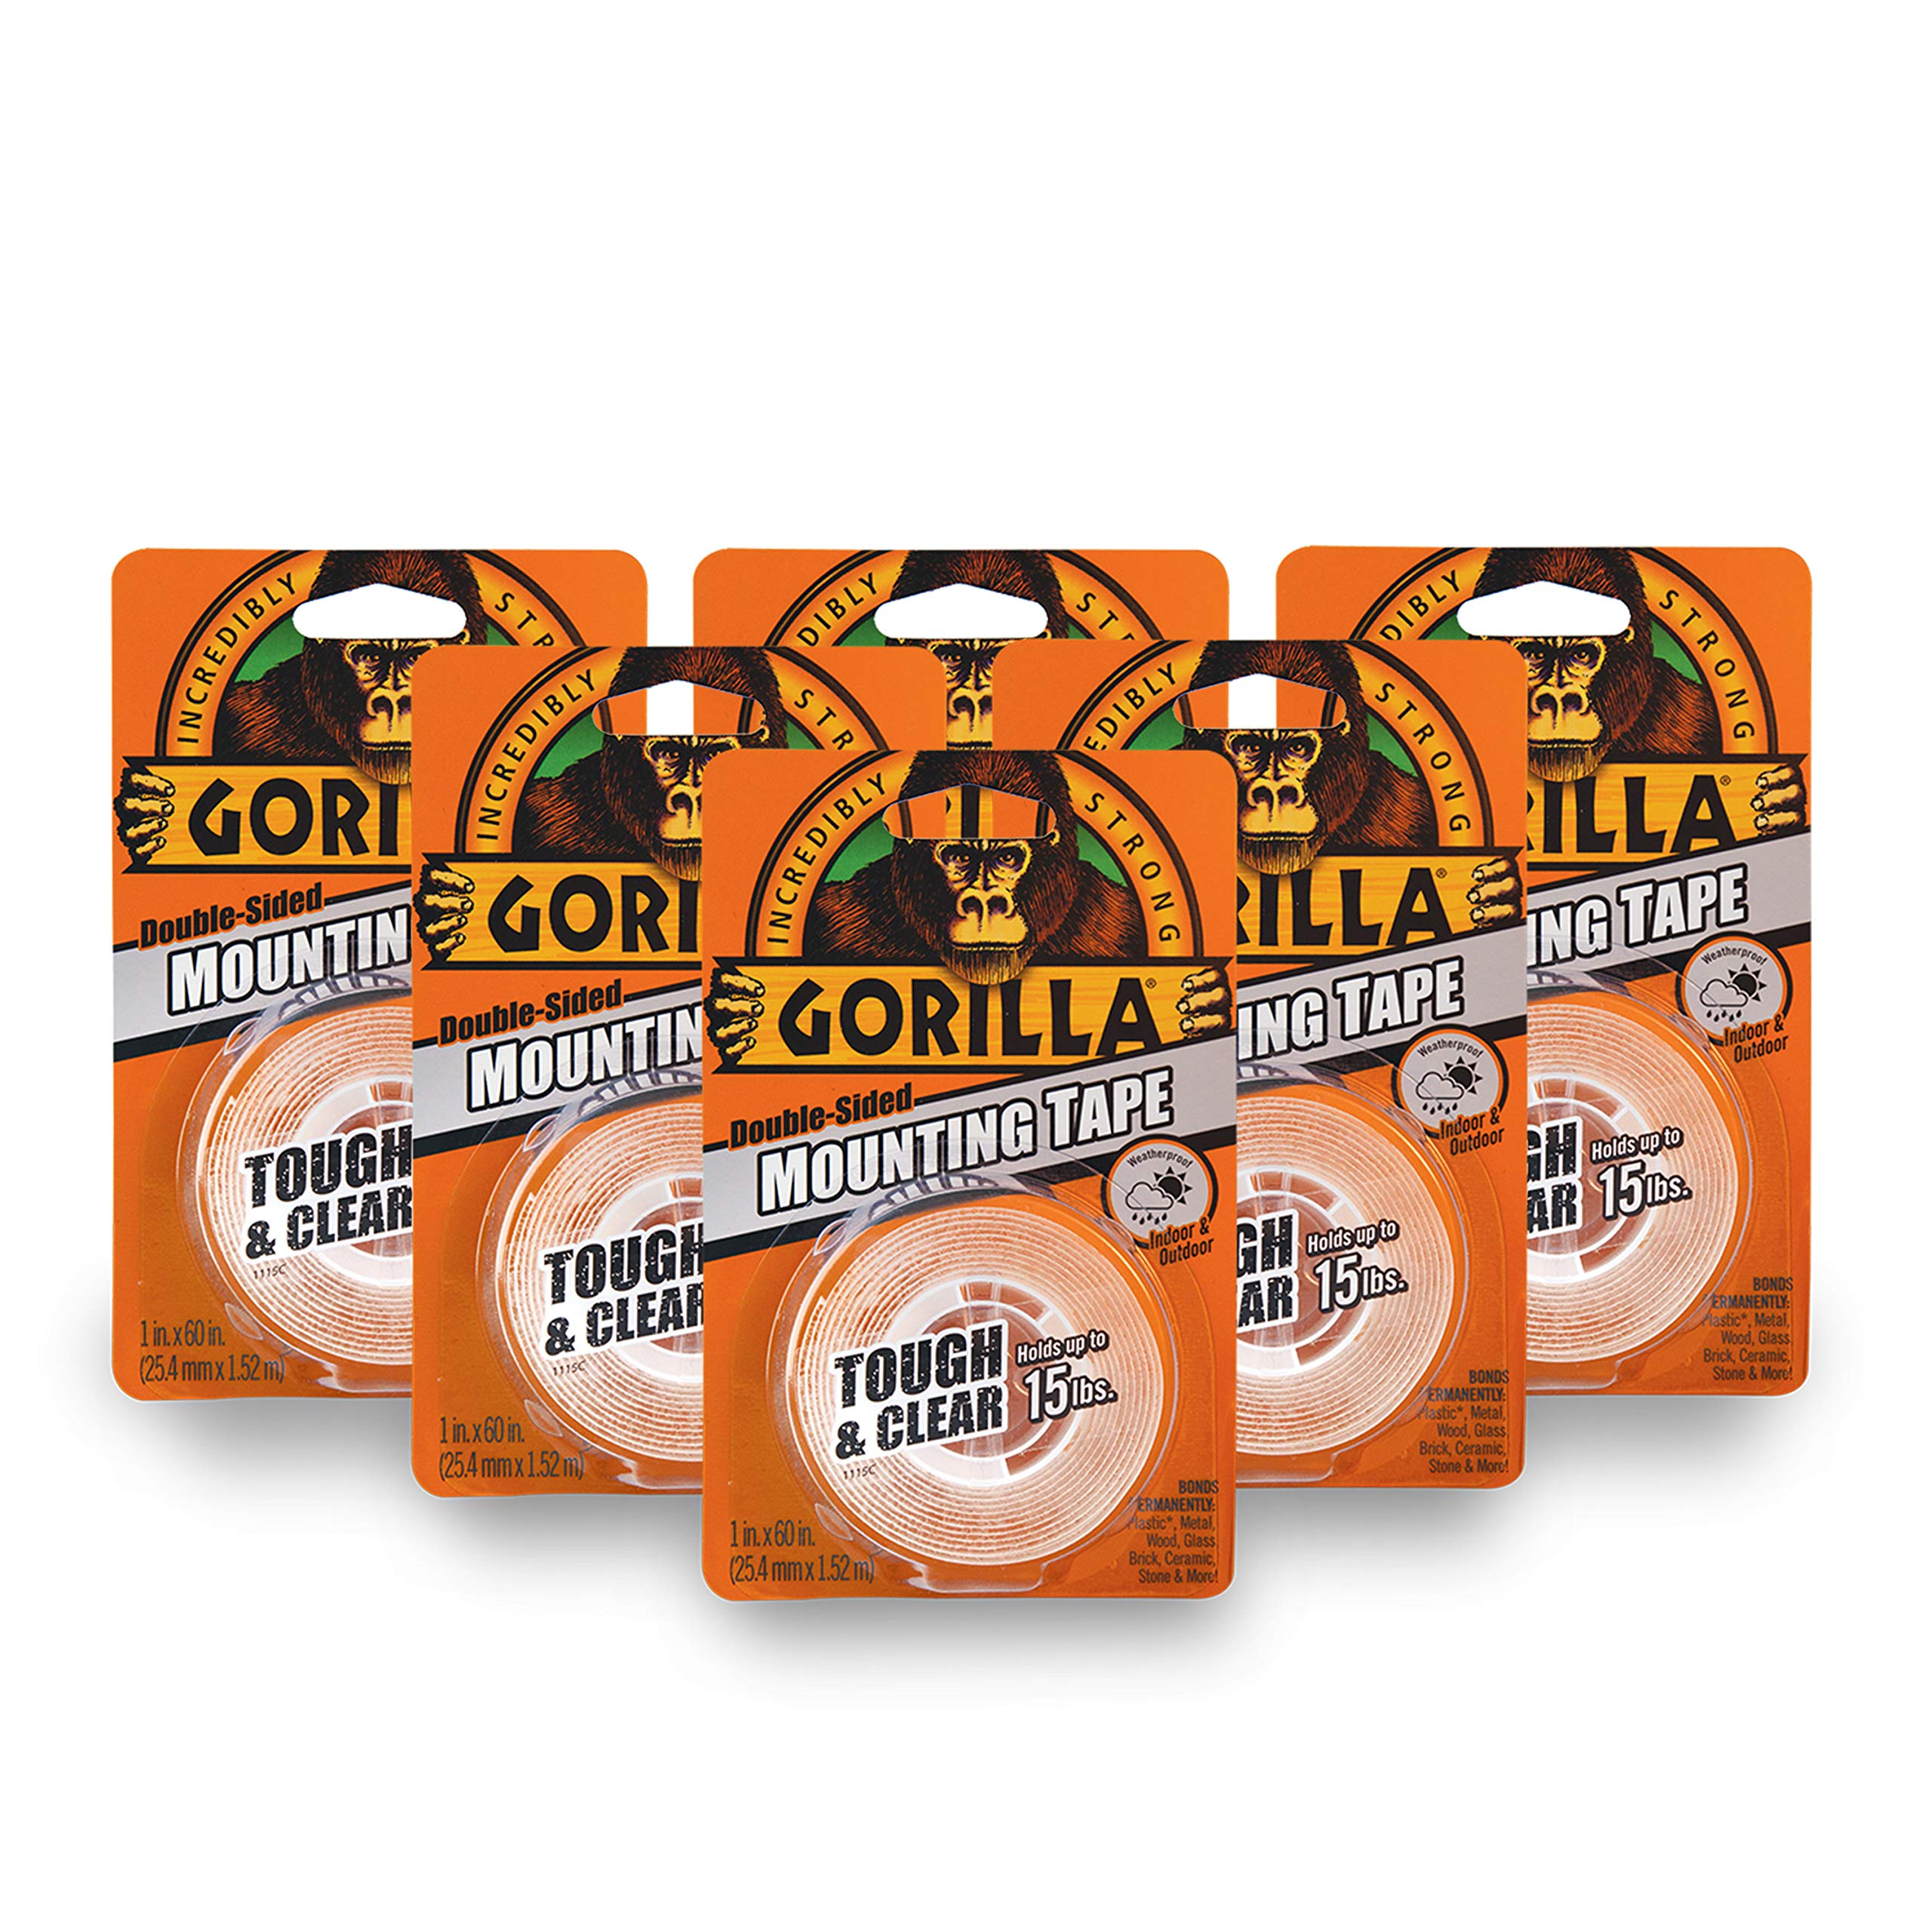 Gorilla Tough & Clear Double Sided Mounting Tape, 1 Inch x 60 Inches, Clear, (Pack of 6)